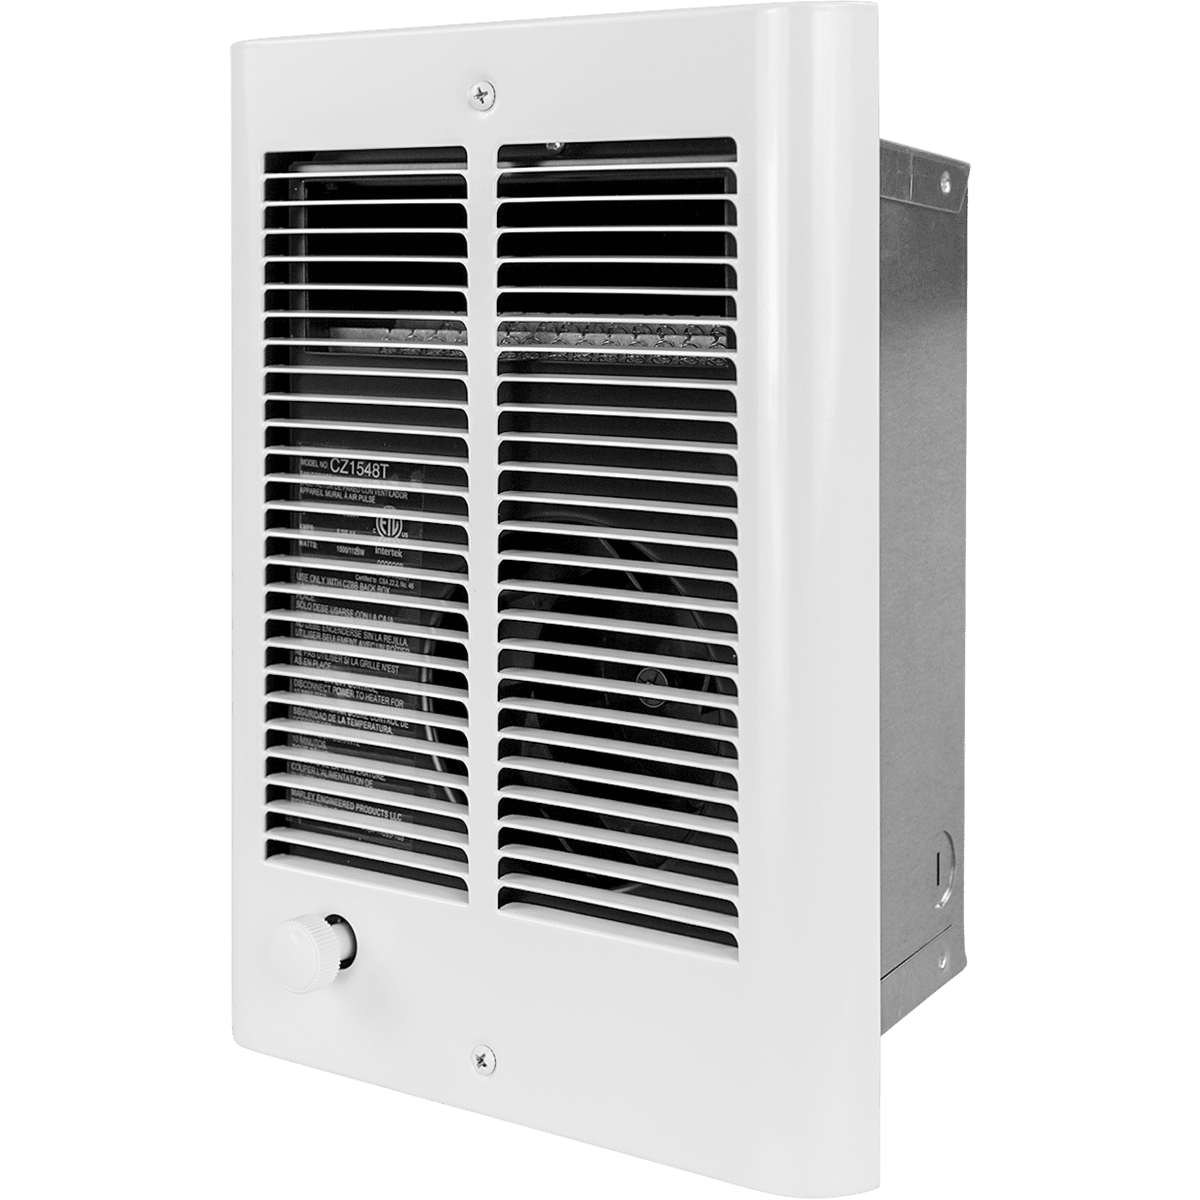 QMark COS-E Fan-Forced Wall Heaters | Sylvane on